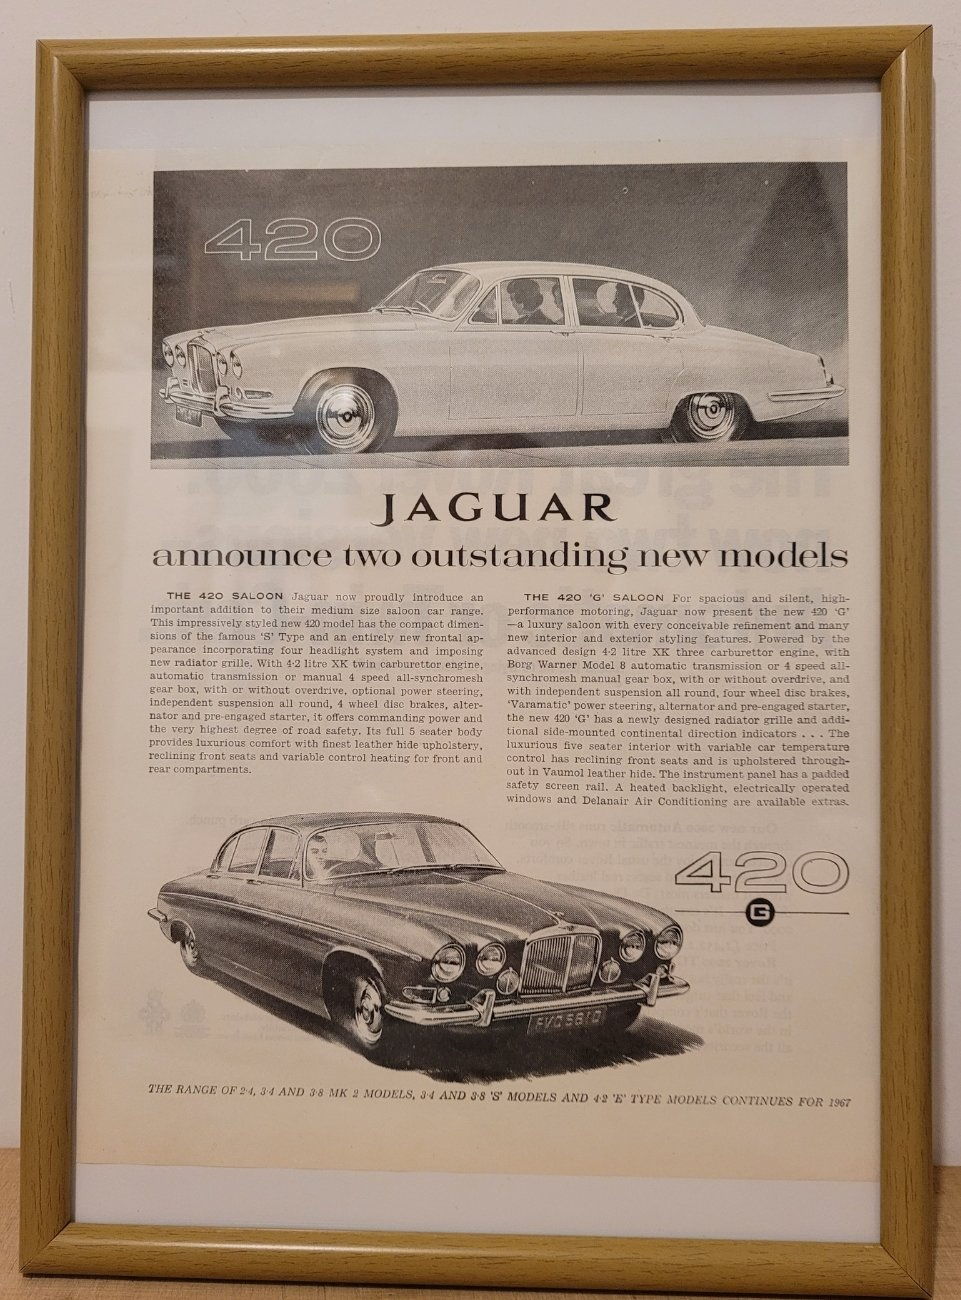 Original 1966 Jaguar 420 Framed Advert